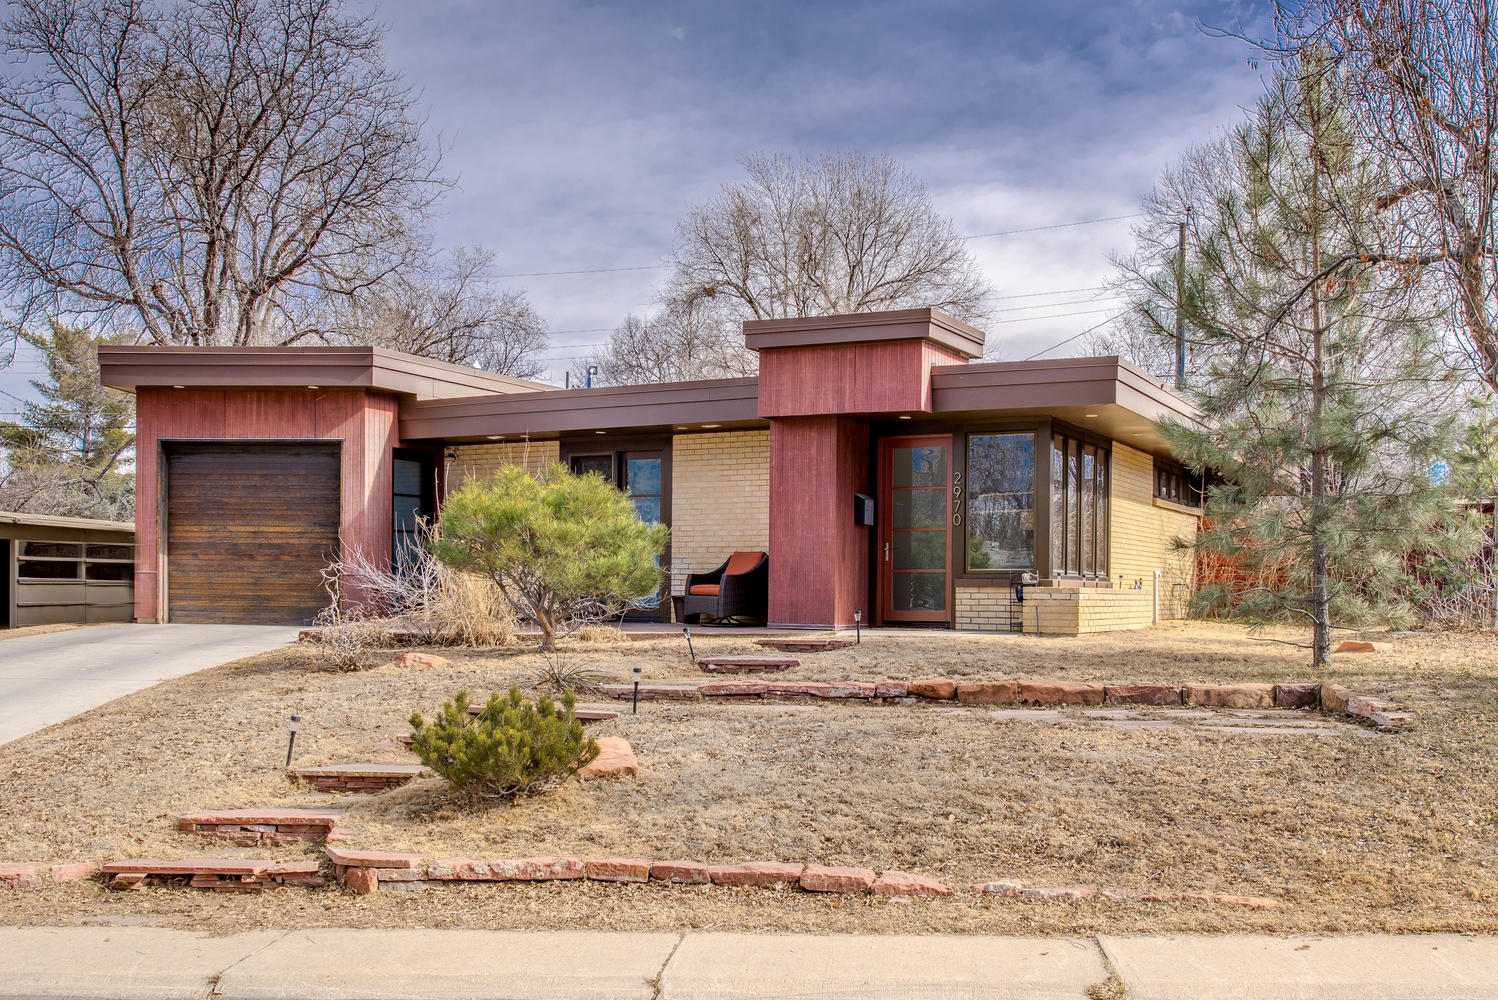 2970 S Marion St, Englewood, CO 80113